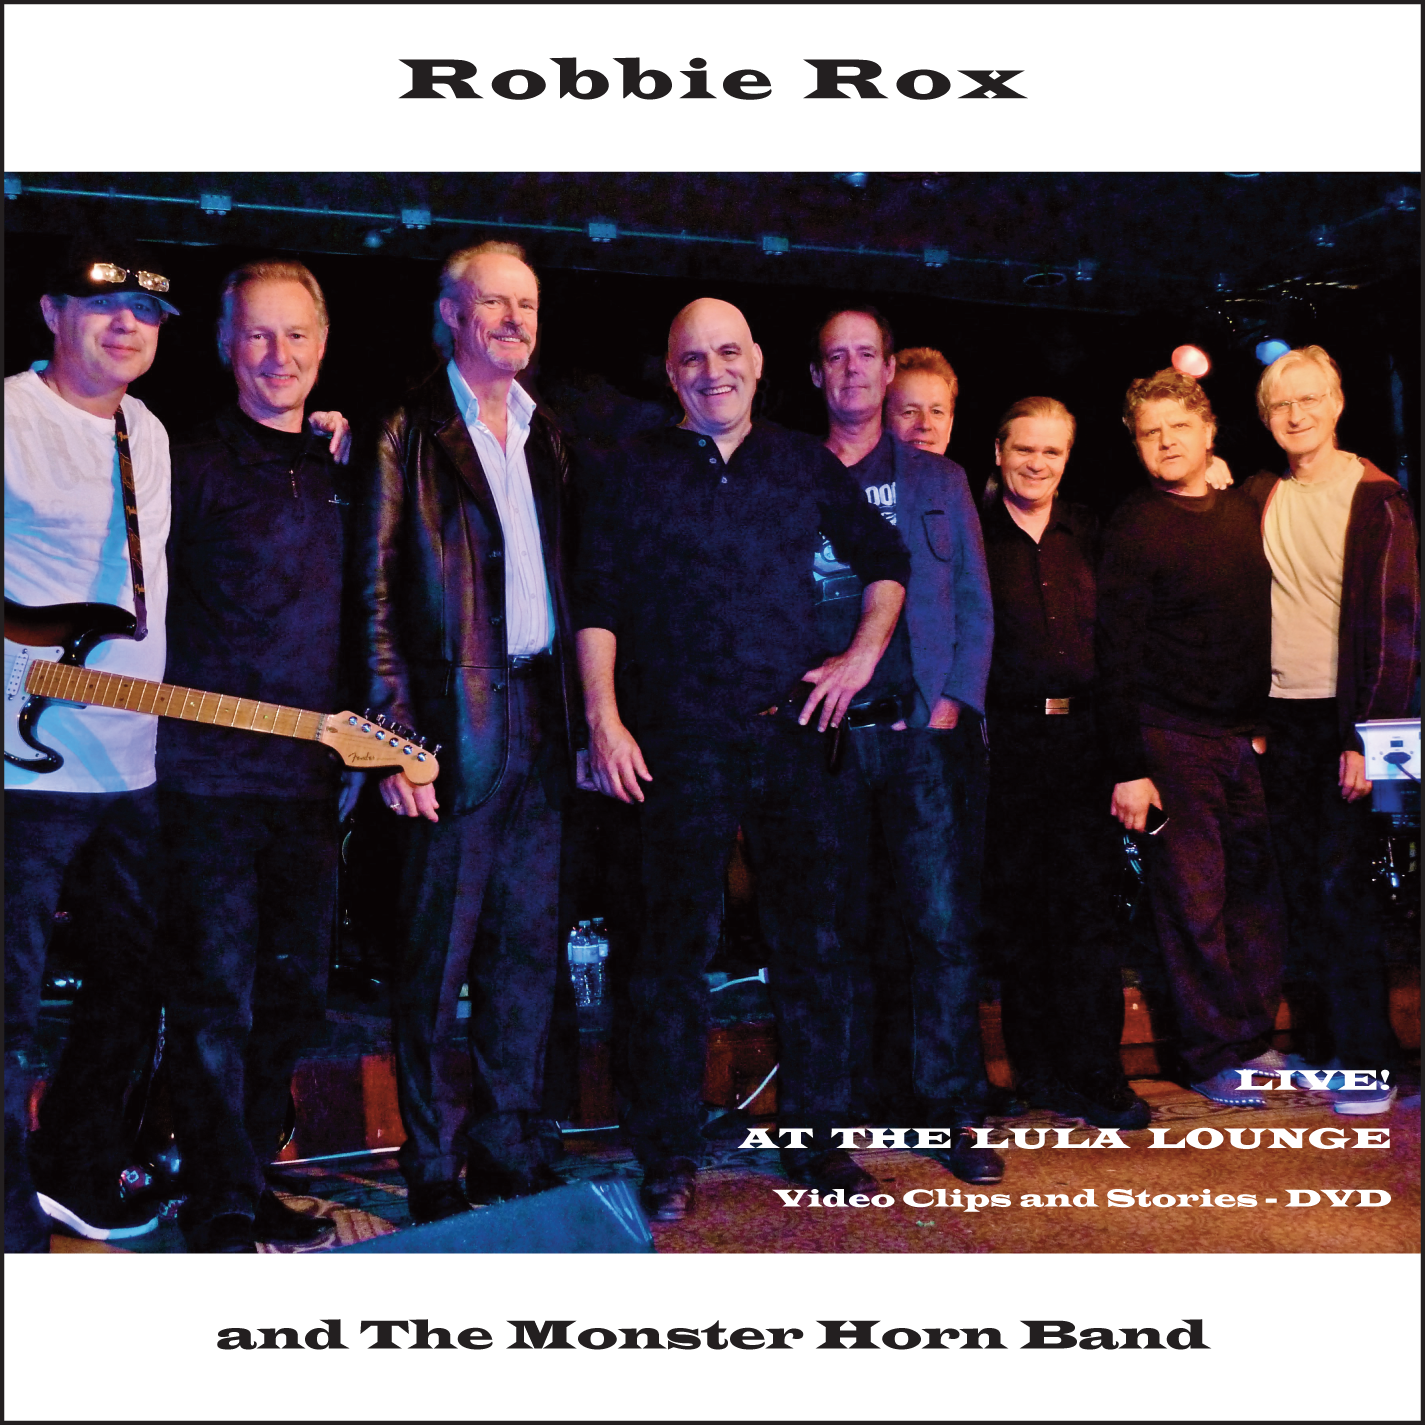 Robbie Rox Live at the Lula Lounge DVD